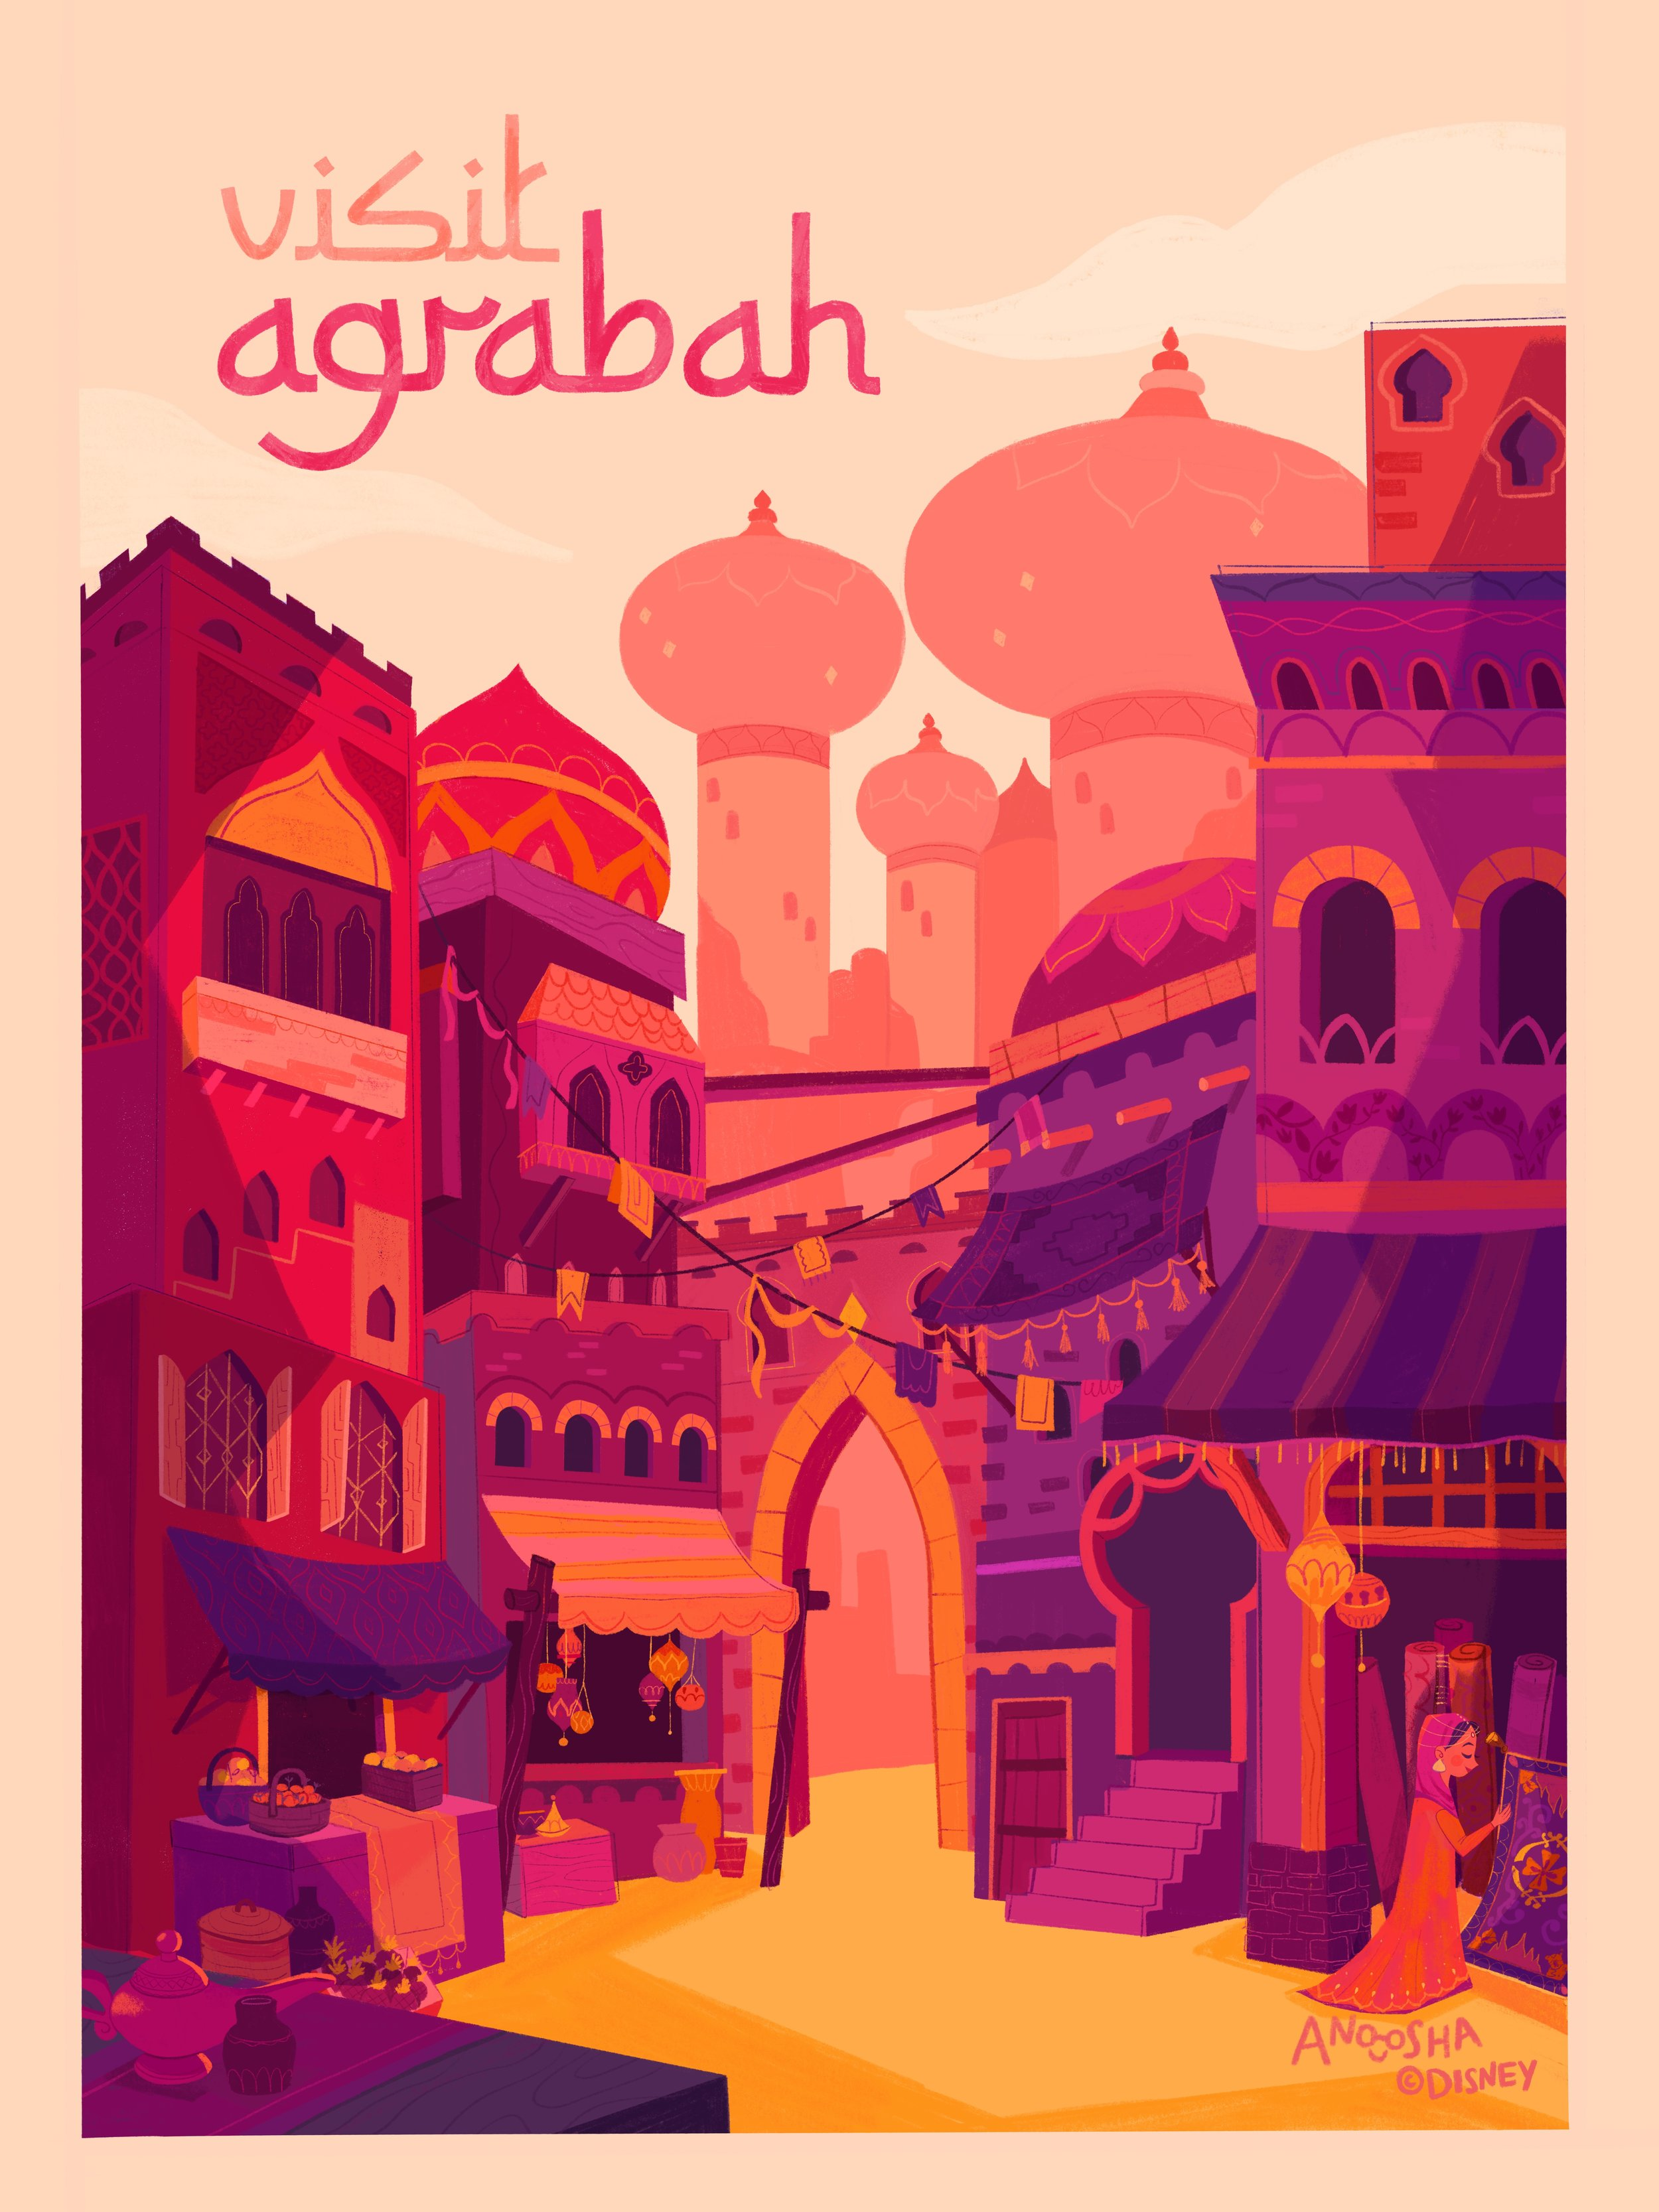 agrabah poster - anoosha syed.jpg